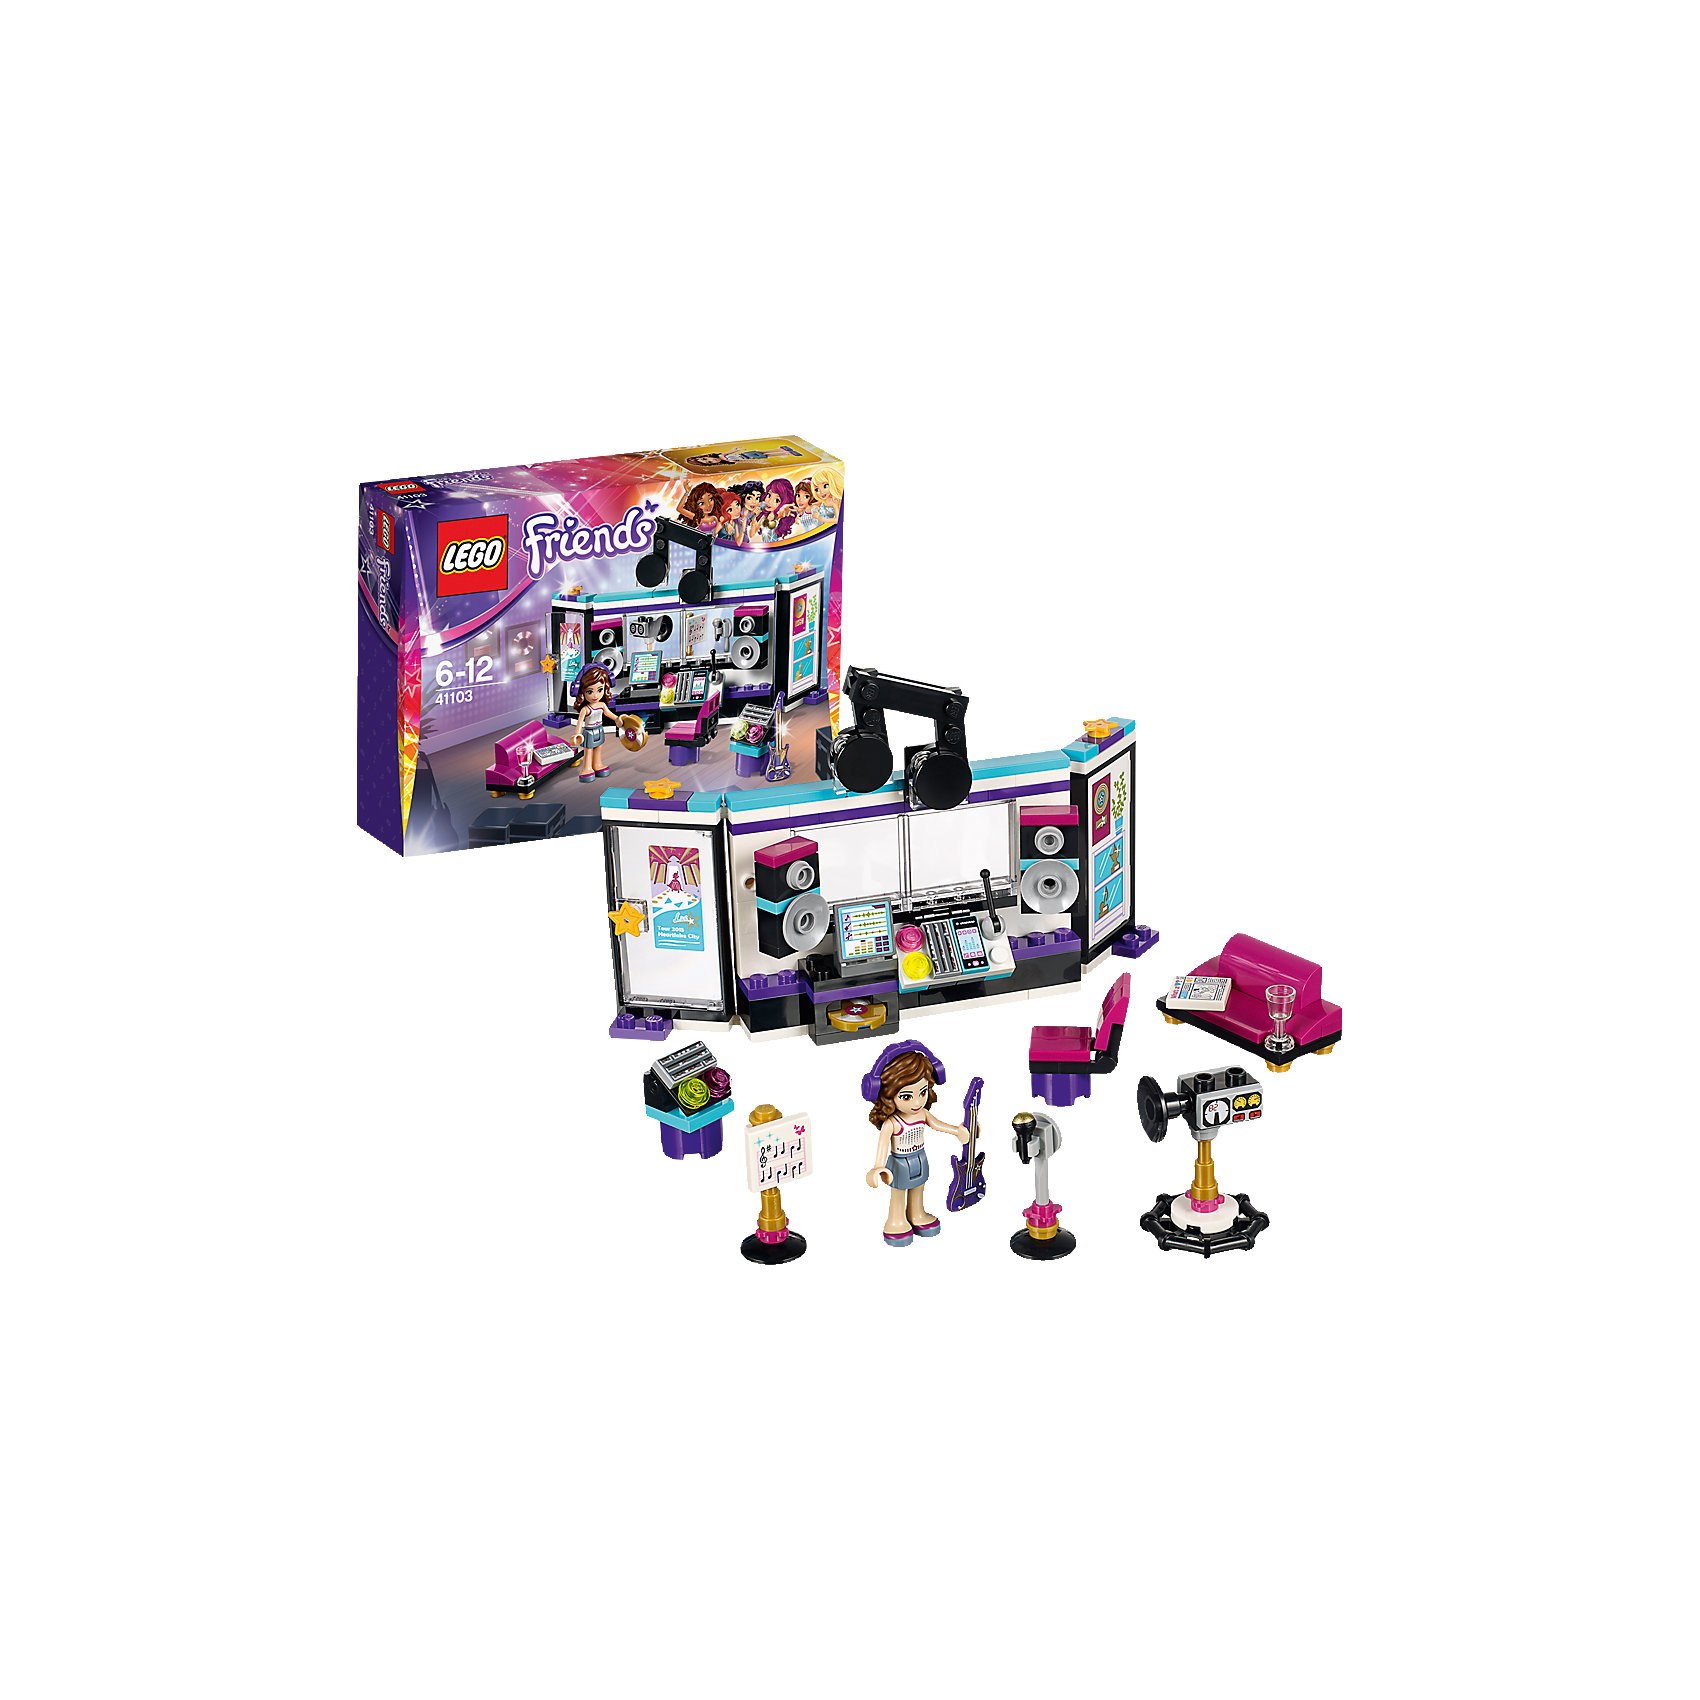 LEGO LEGO Friends 41103: Поп звезда: студия звукозаписи electric scooter antiskid seat hand brake recreation vehicle collapsible disabled safety comfortable for single elder people